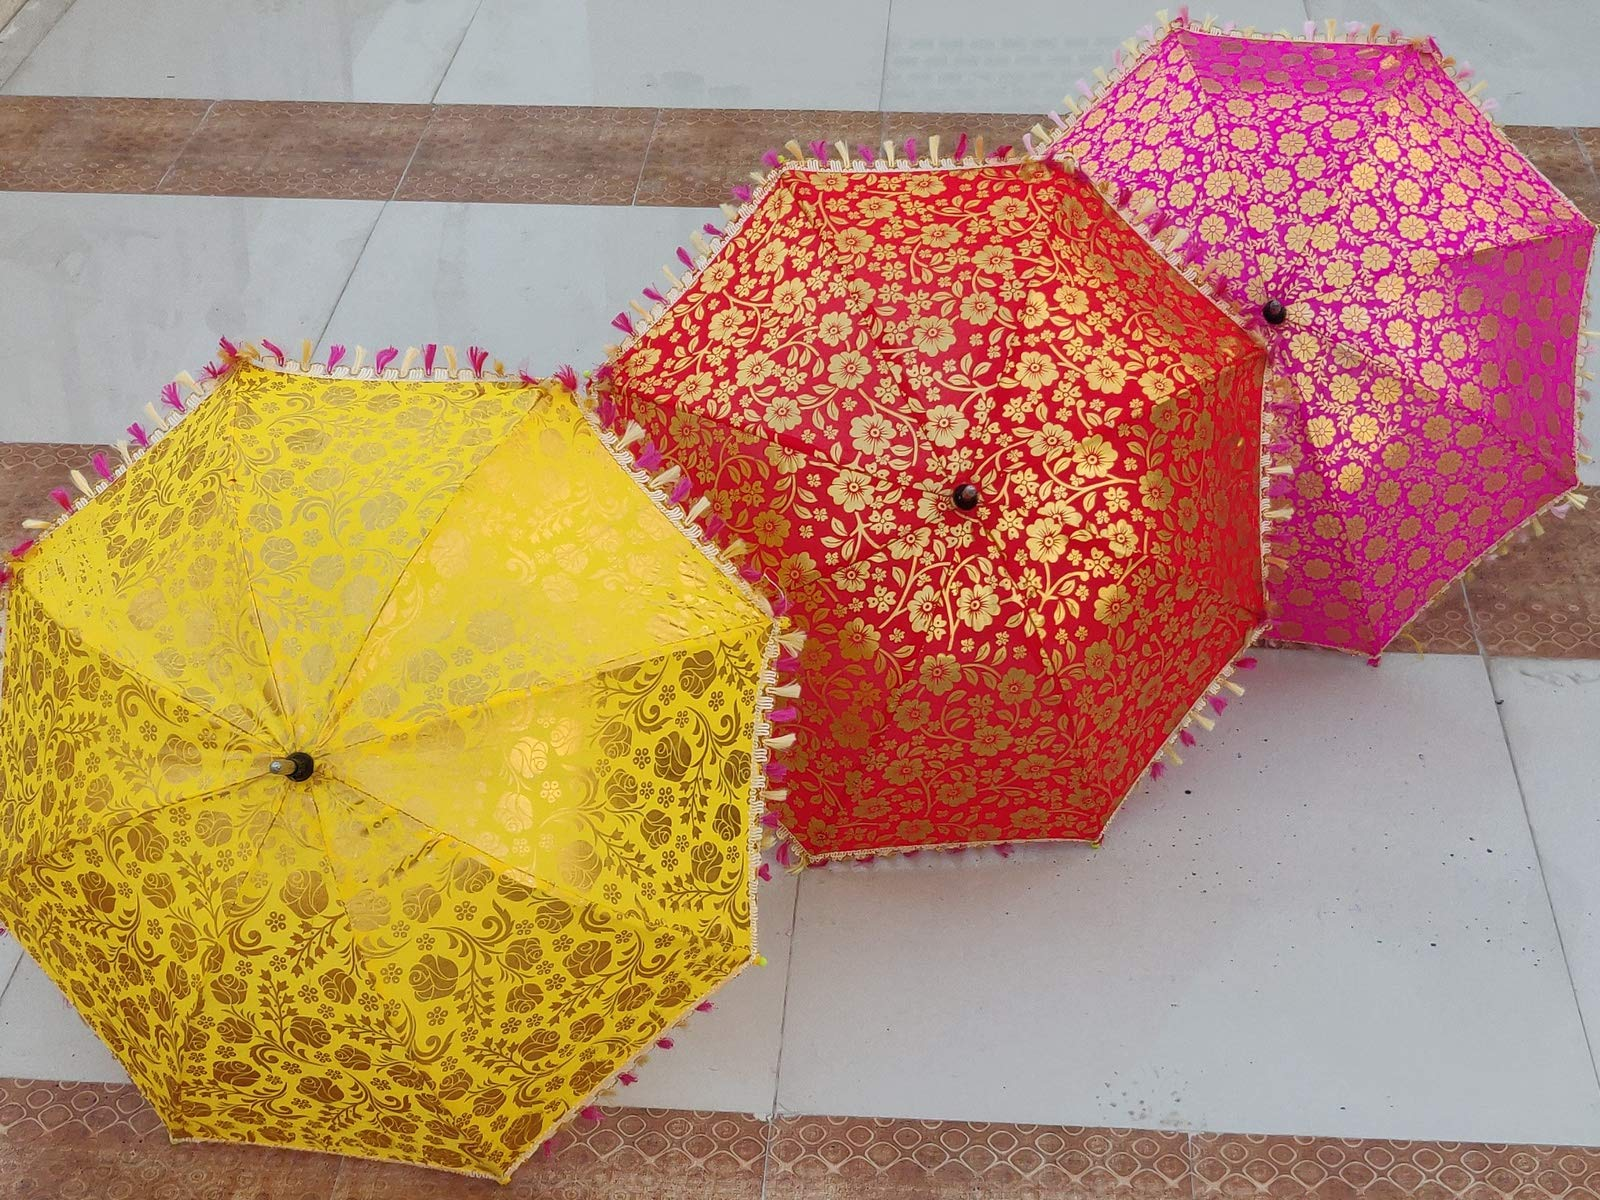 Worldoftextile 10 Pcs Mix Lot Indian Wedding Umbrella Handmade Umbrella Decorations Vintage Parasols Cotton Umbrellas by Worldoftextile